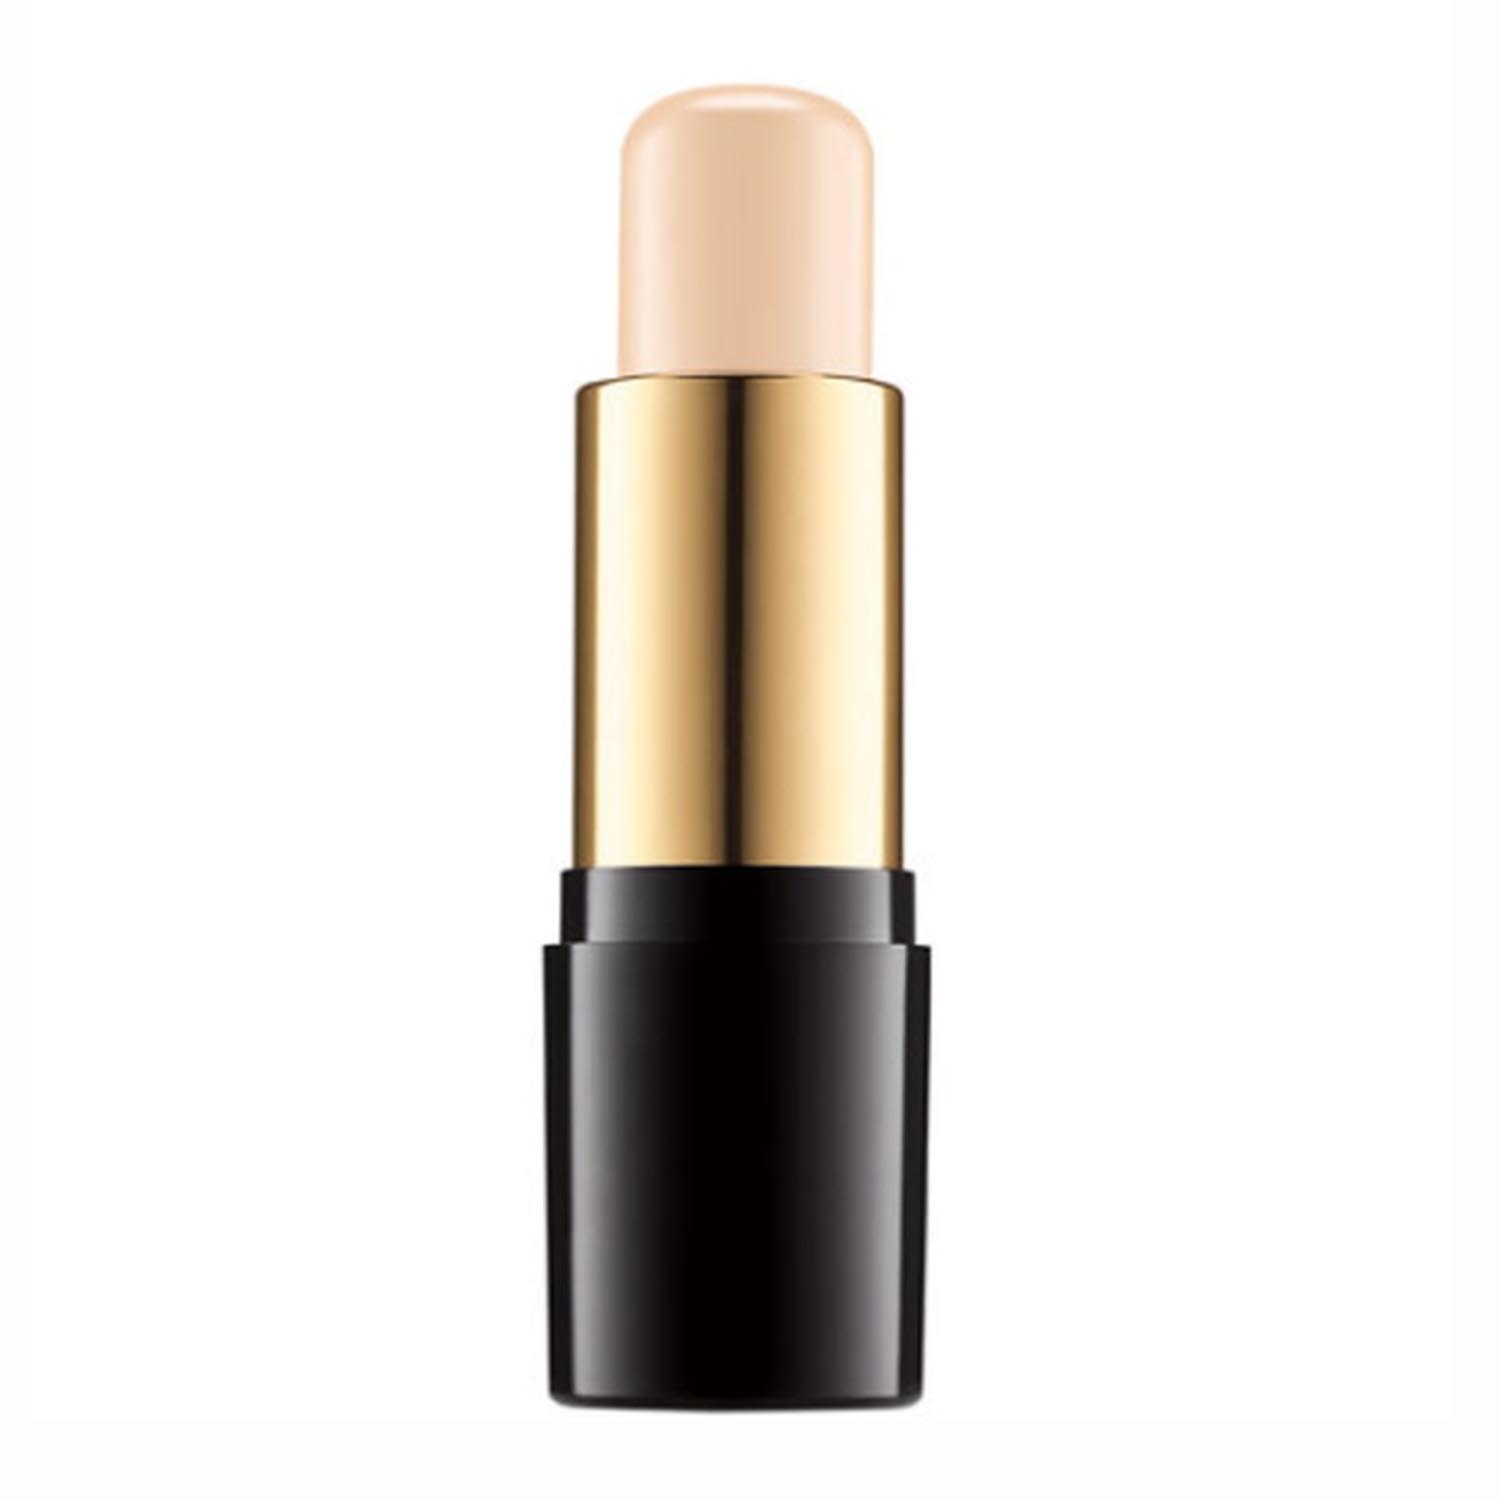 Lancome teint idole ultra stick foundation 045 beige sable